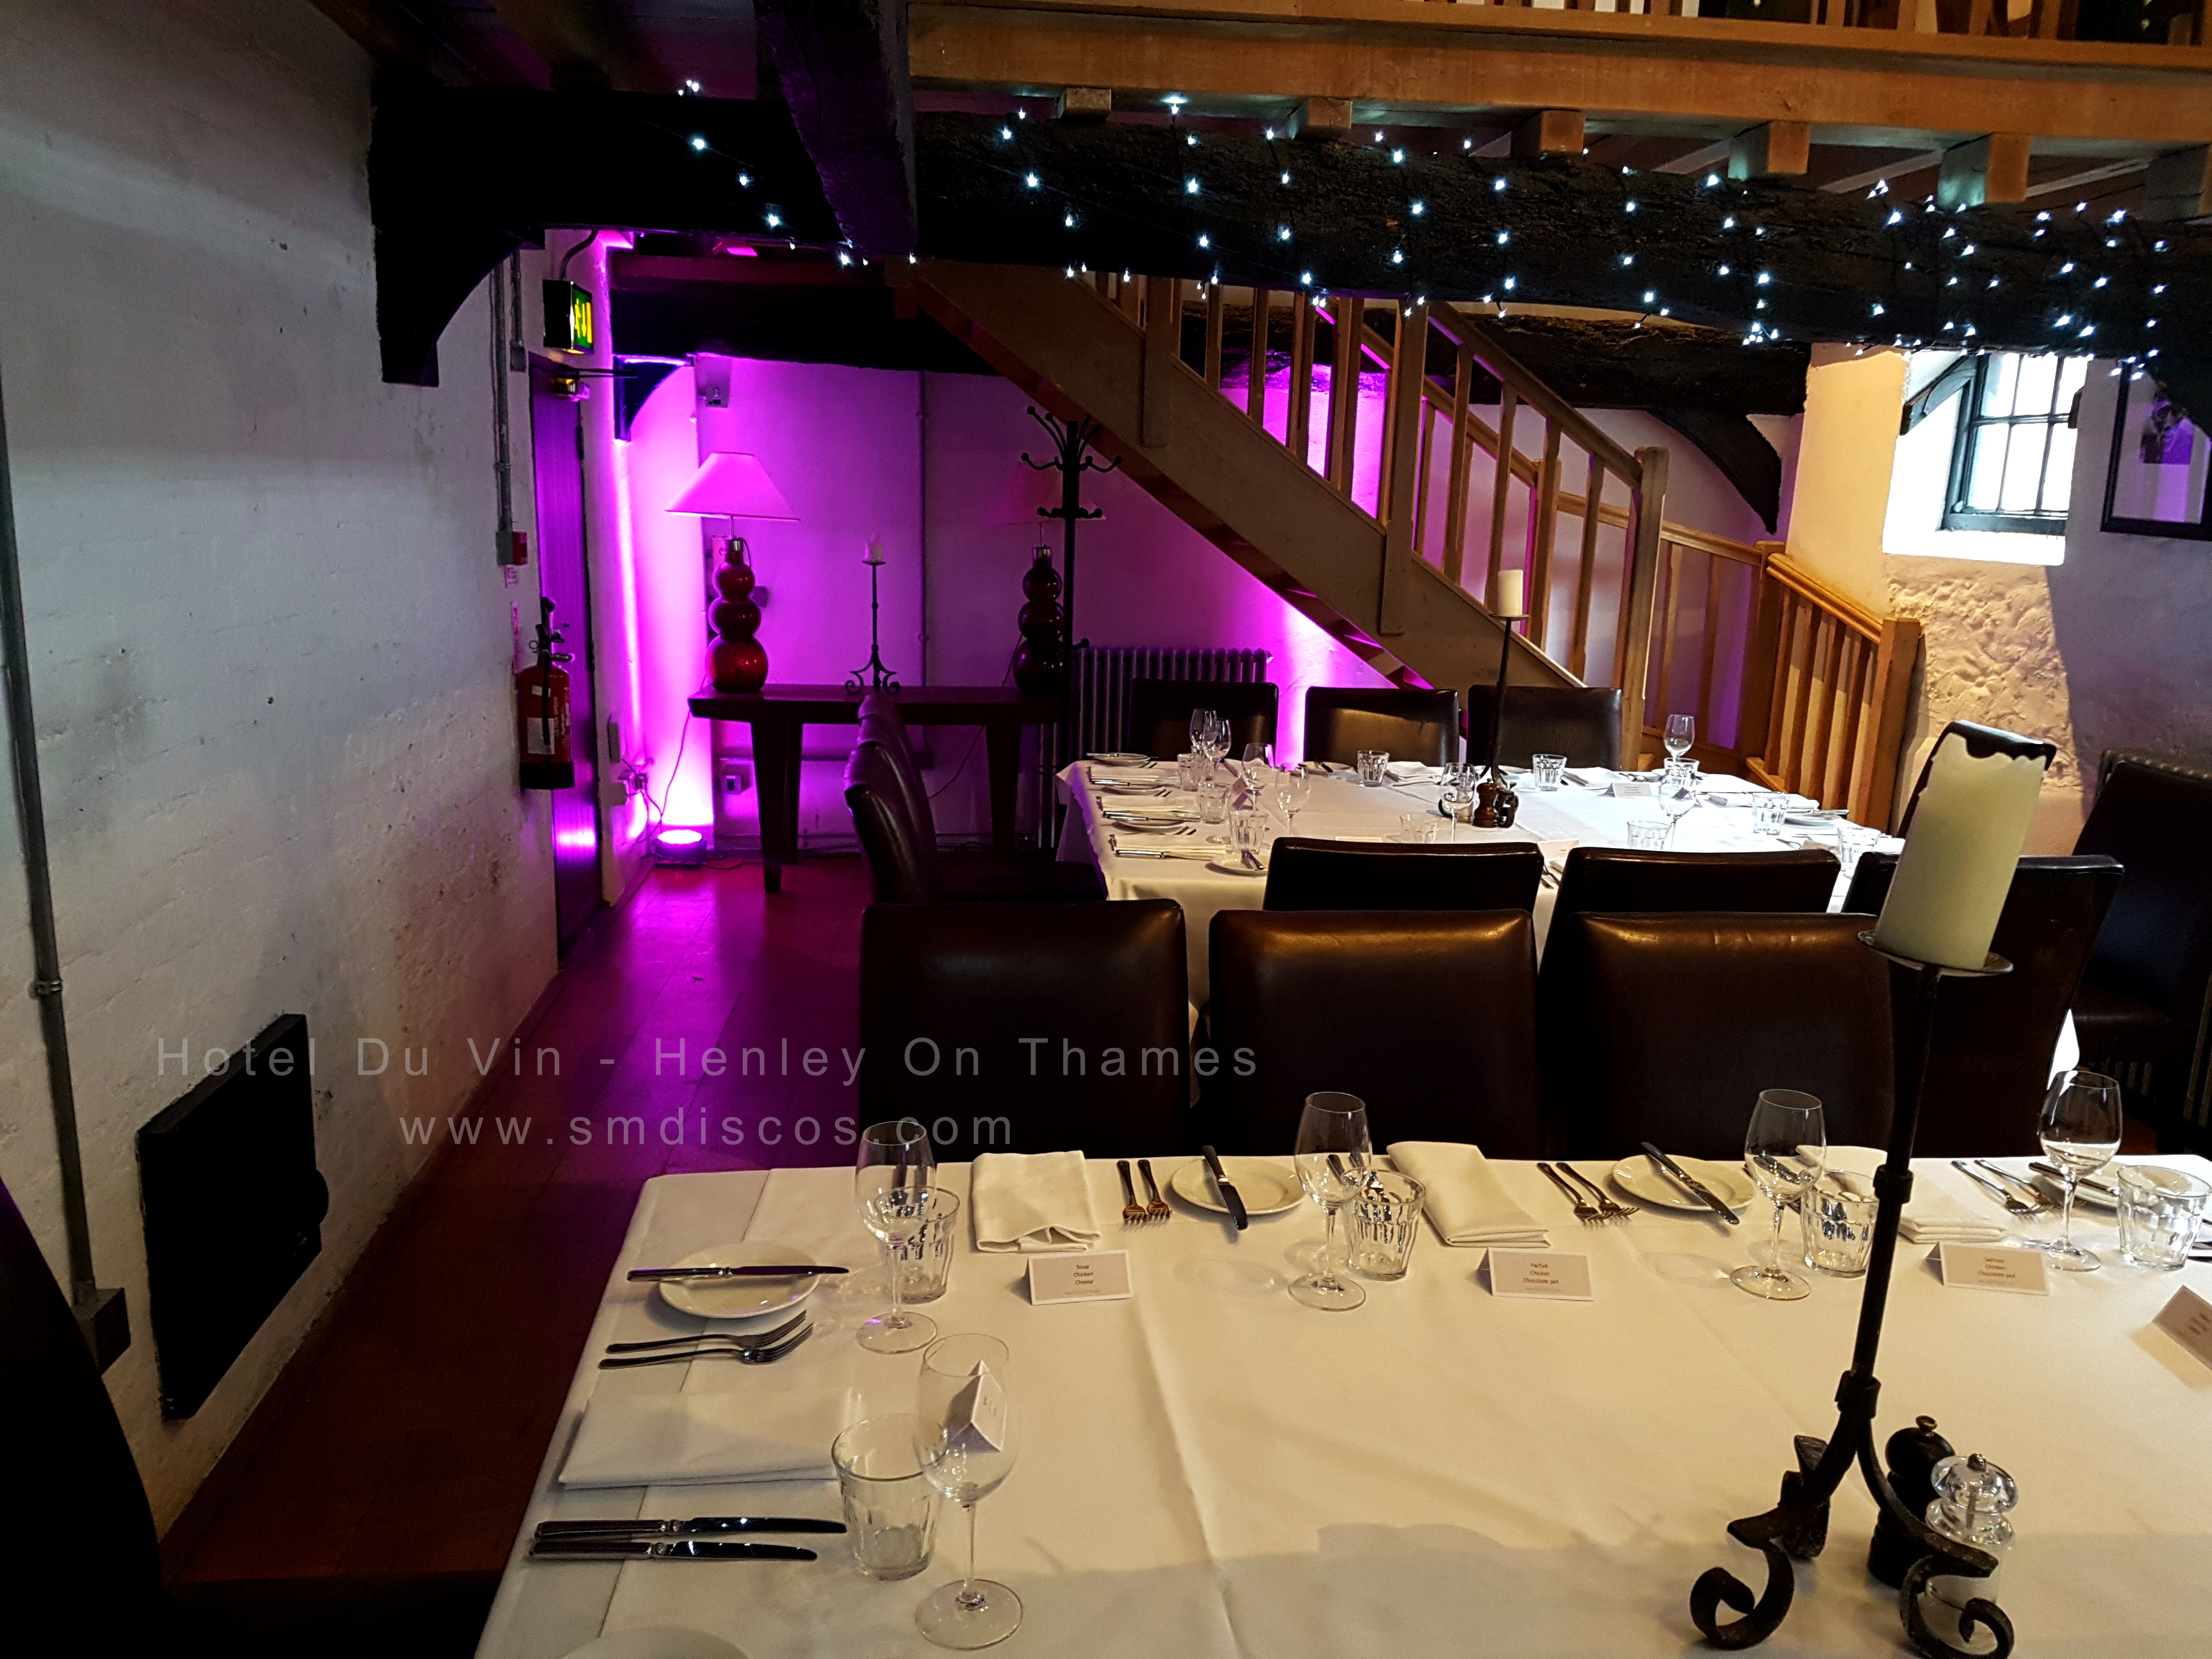 Hotel Du Vin Uplighting Henley On Thames